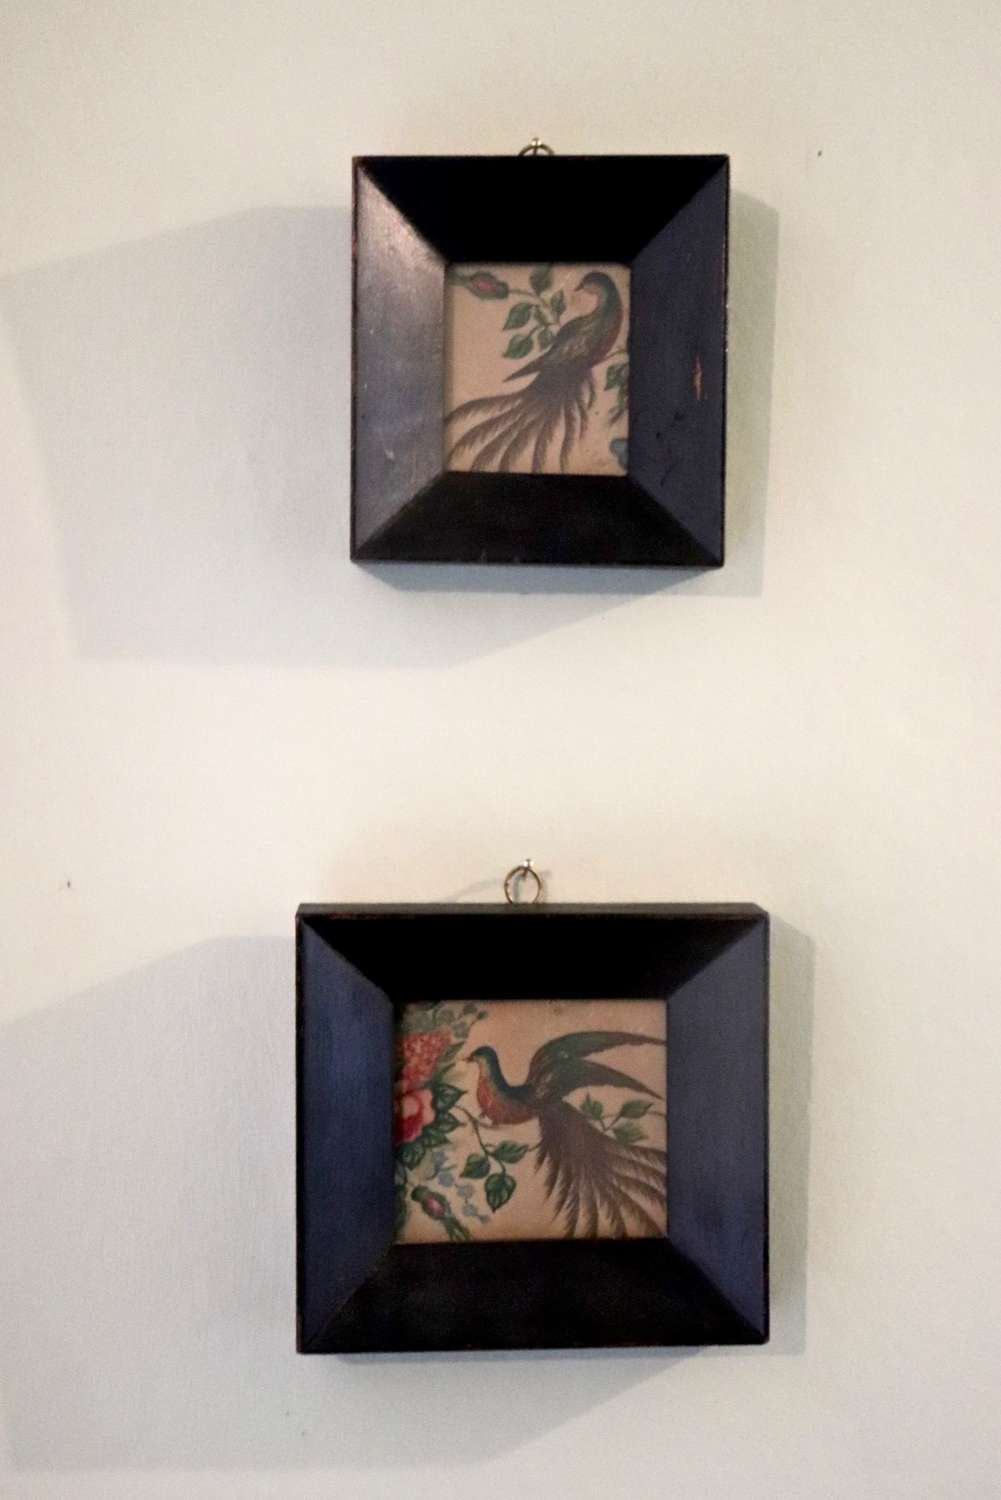 Two framed wallpaper sections depicting birds and flowers